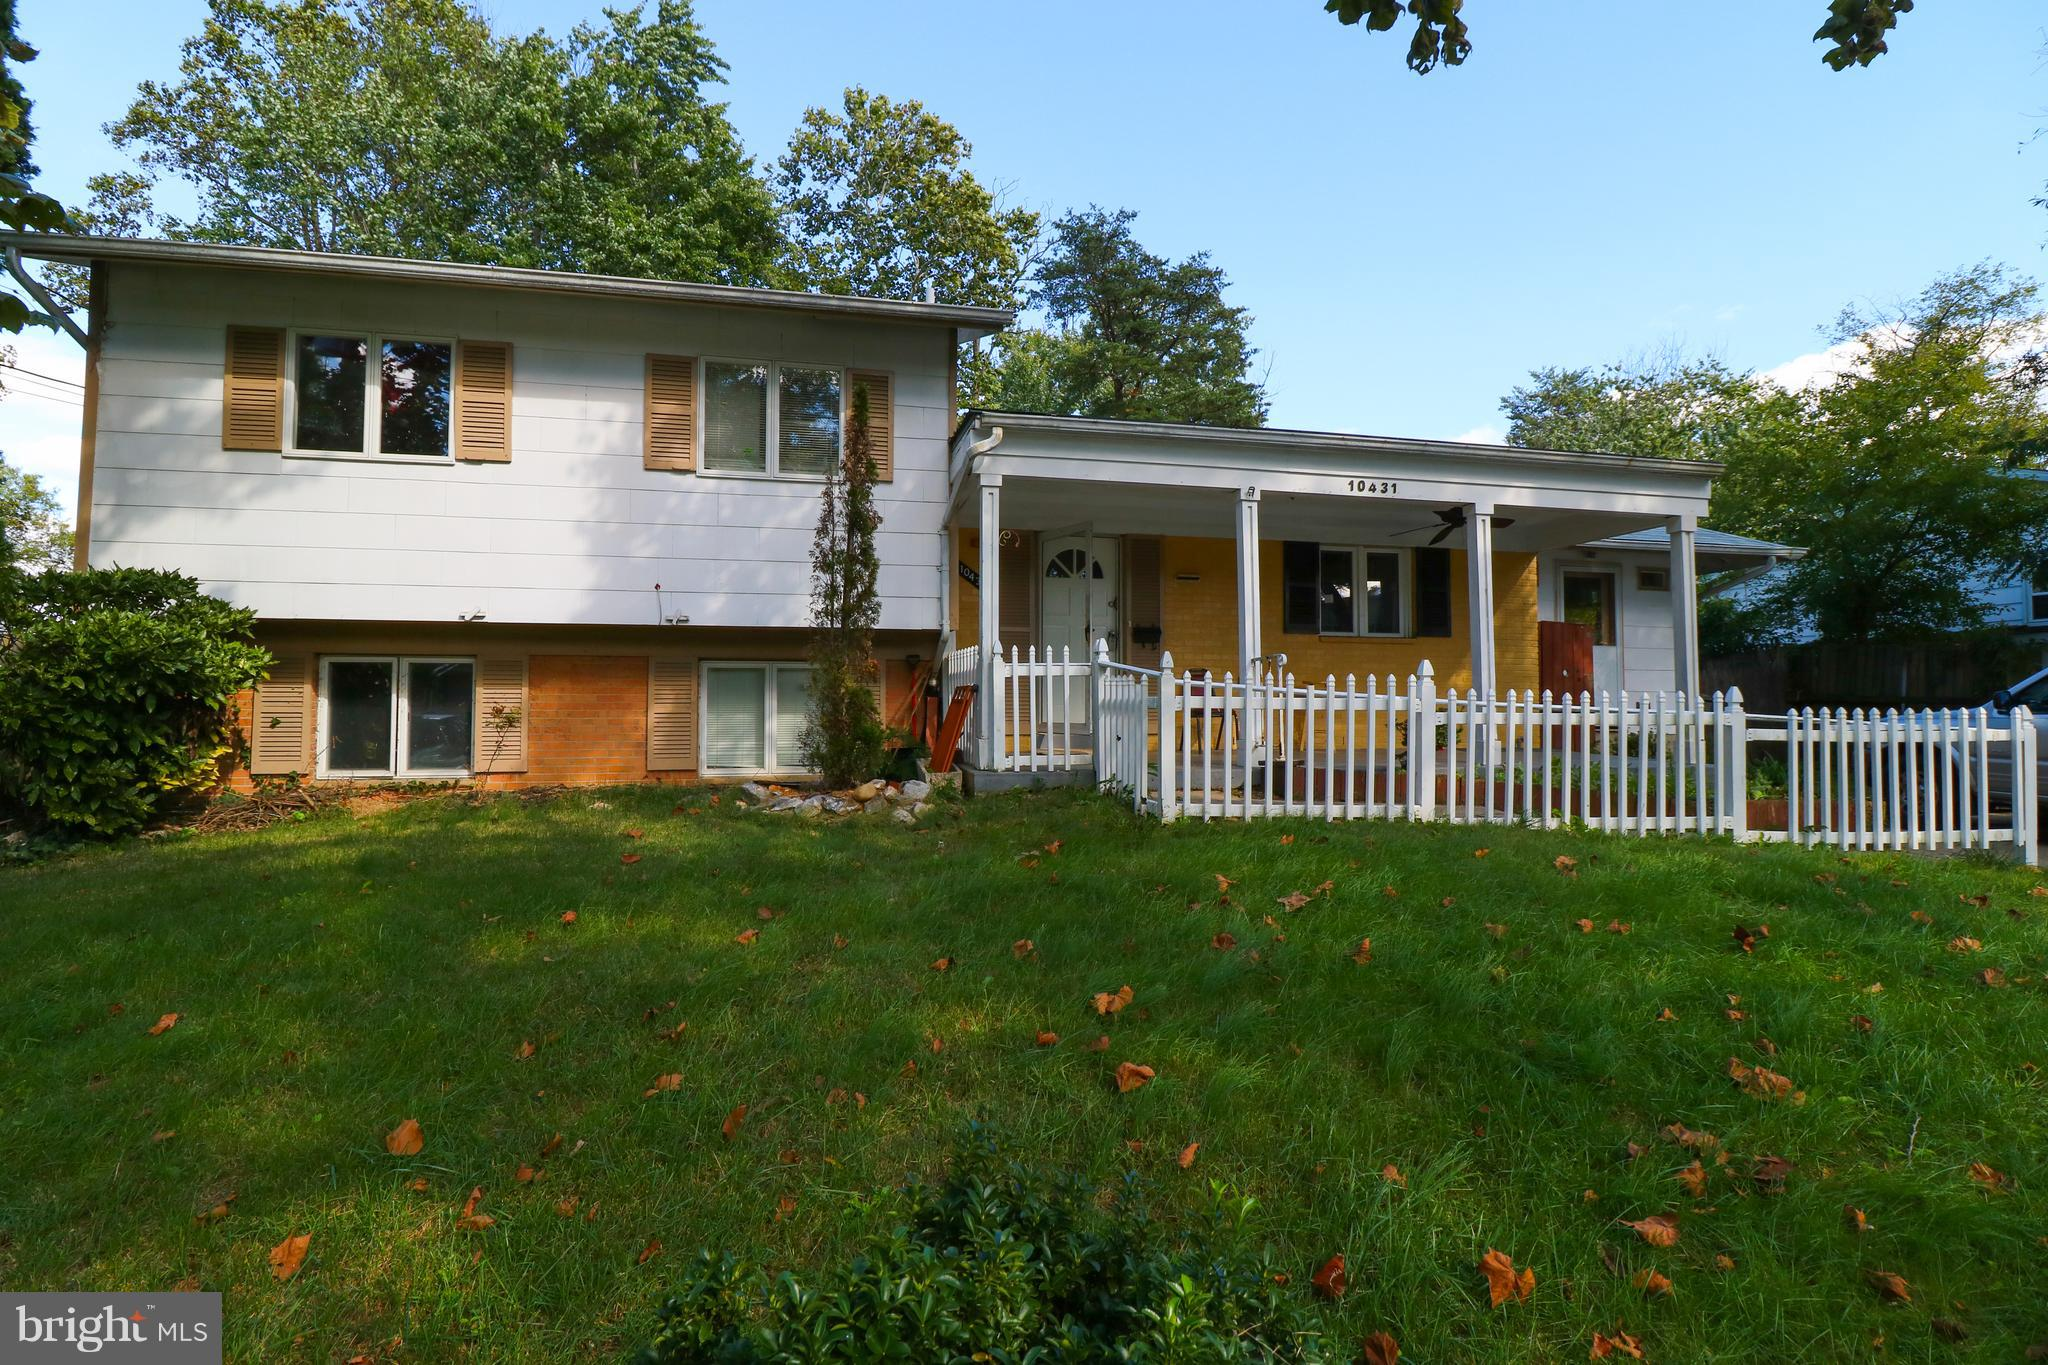 10431 FLORAL DRIVE, ADELPHI, MD 20783